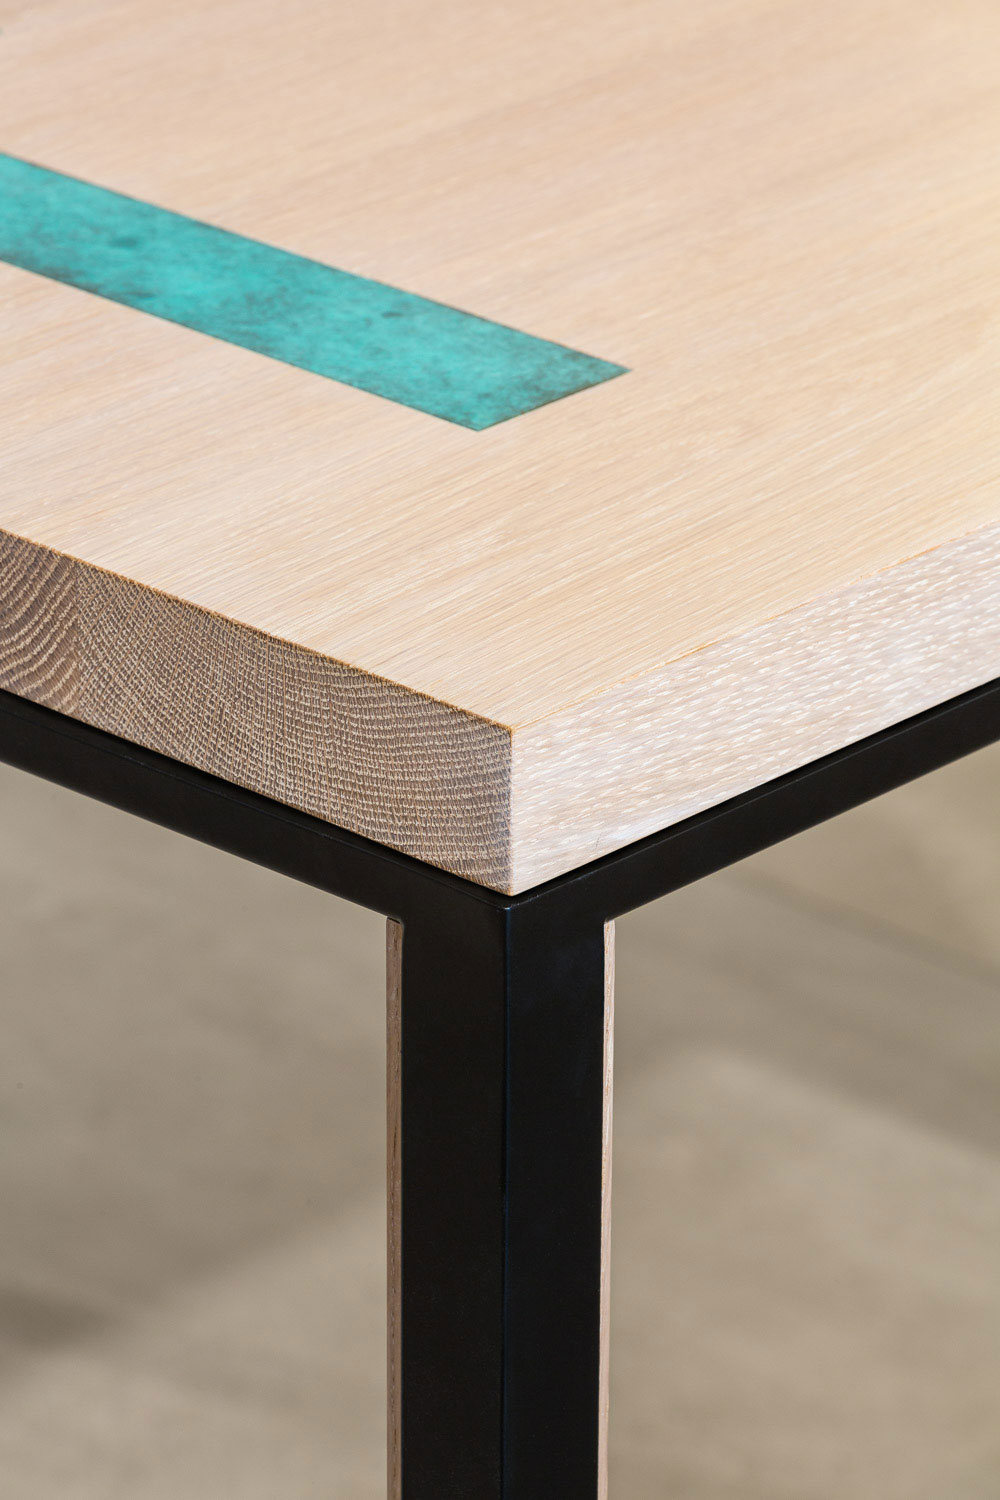 Architecture-London-Design-Freehaus-Puzzle-Table-1.jpg